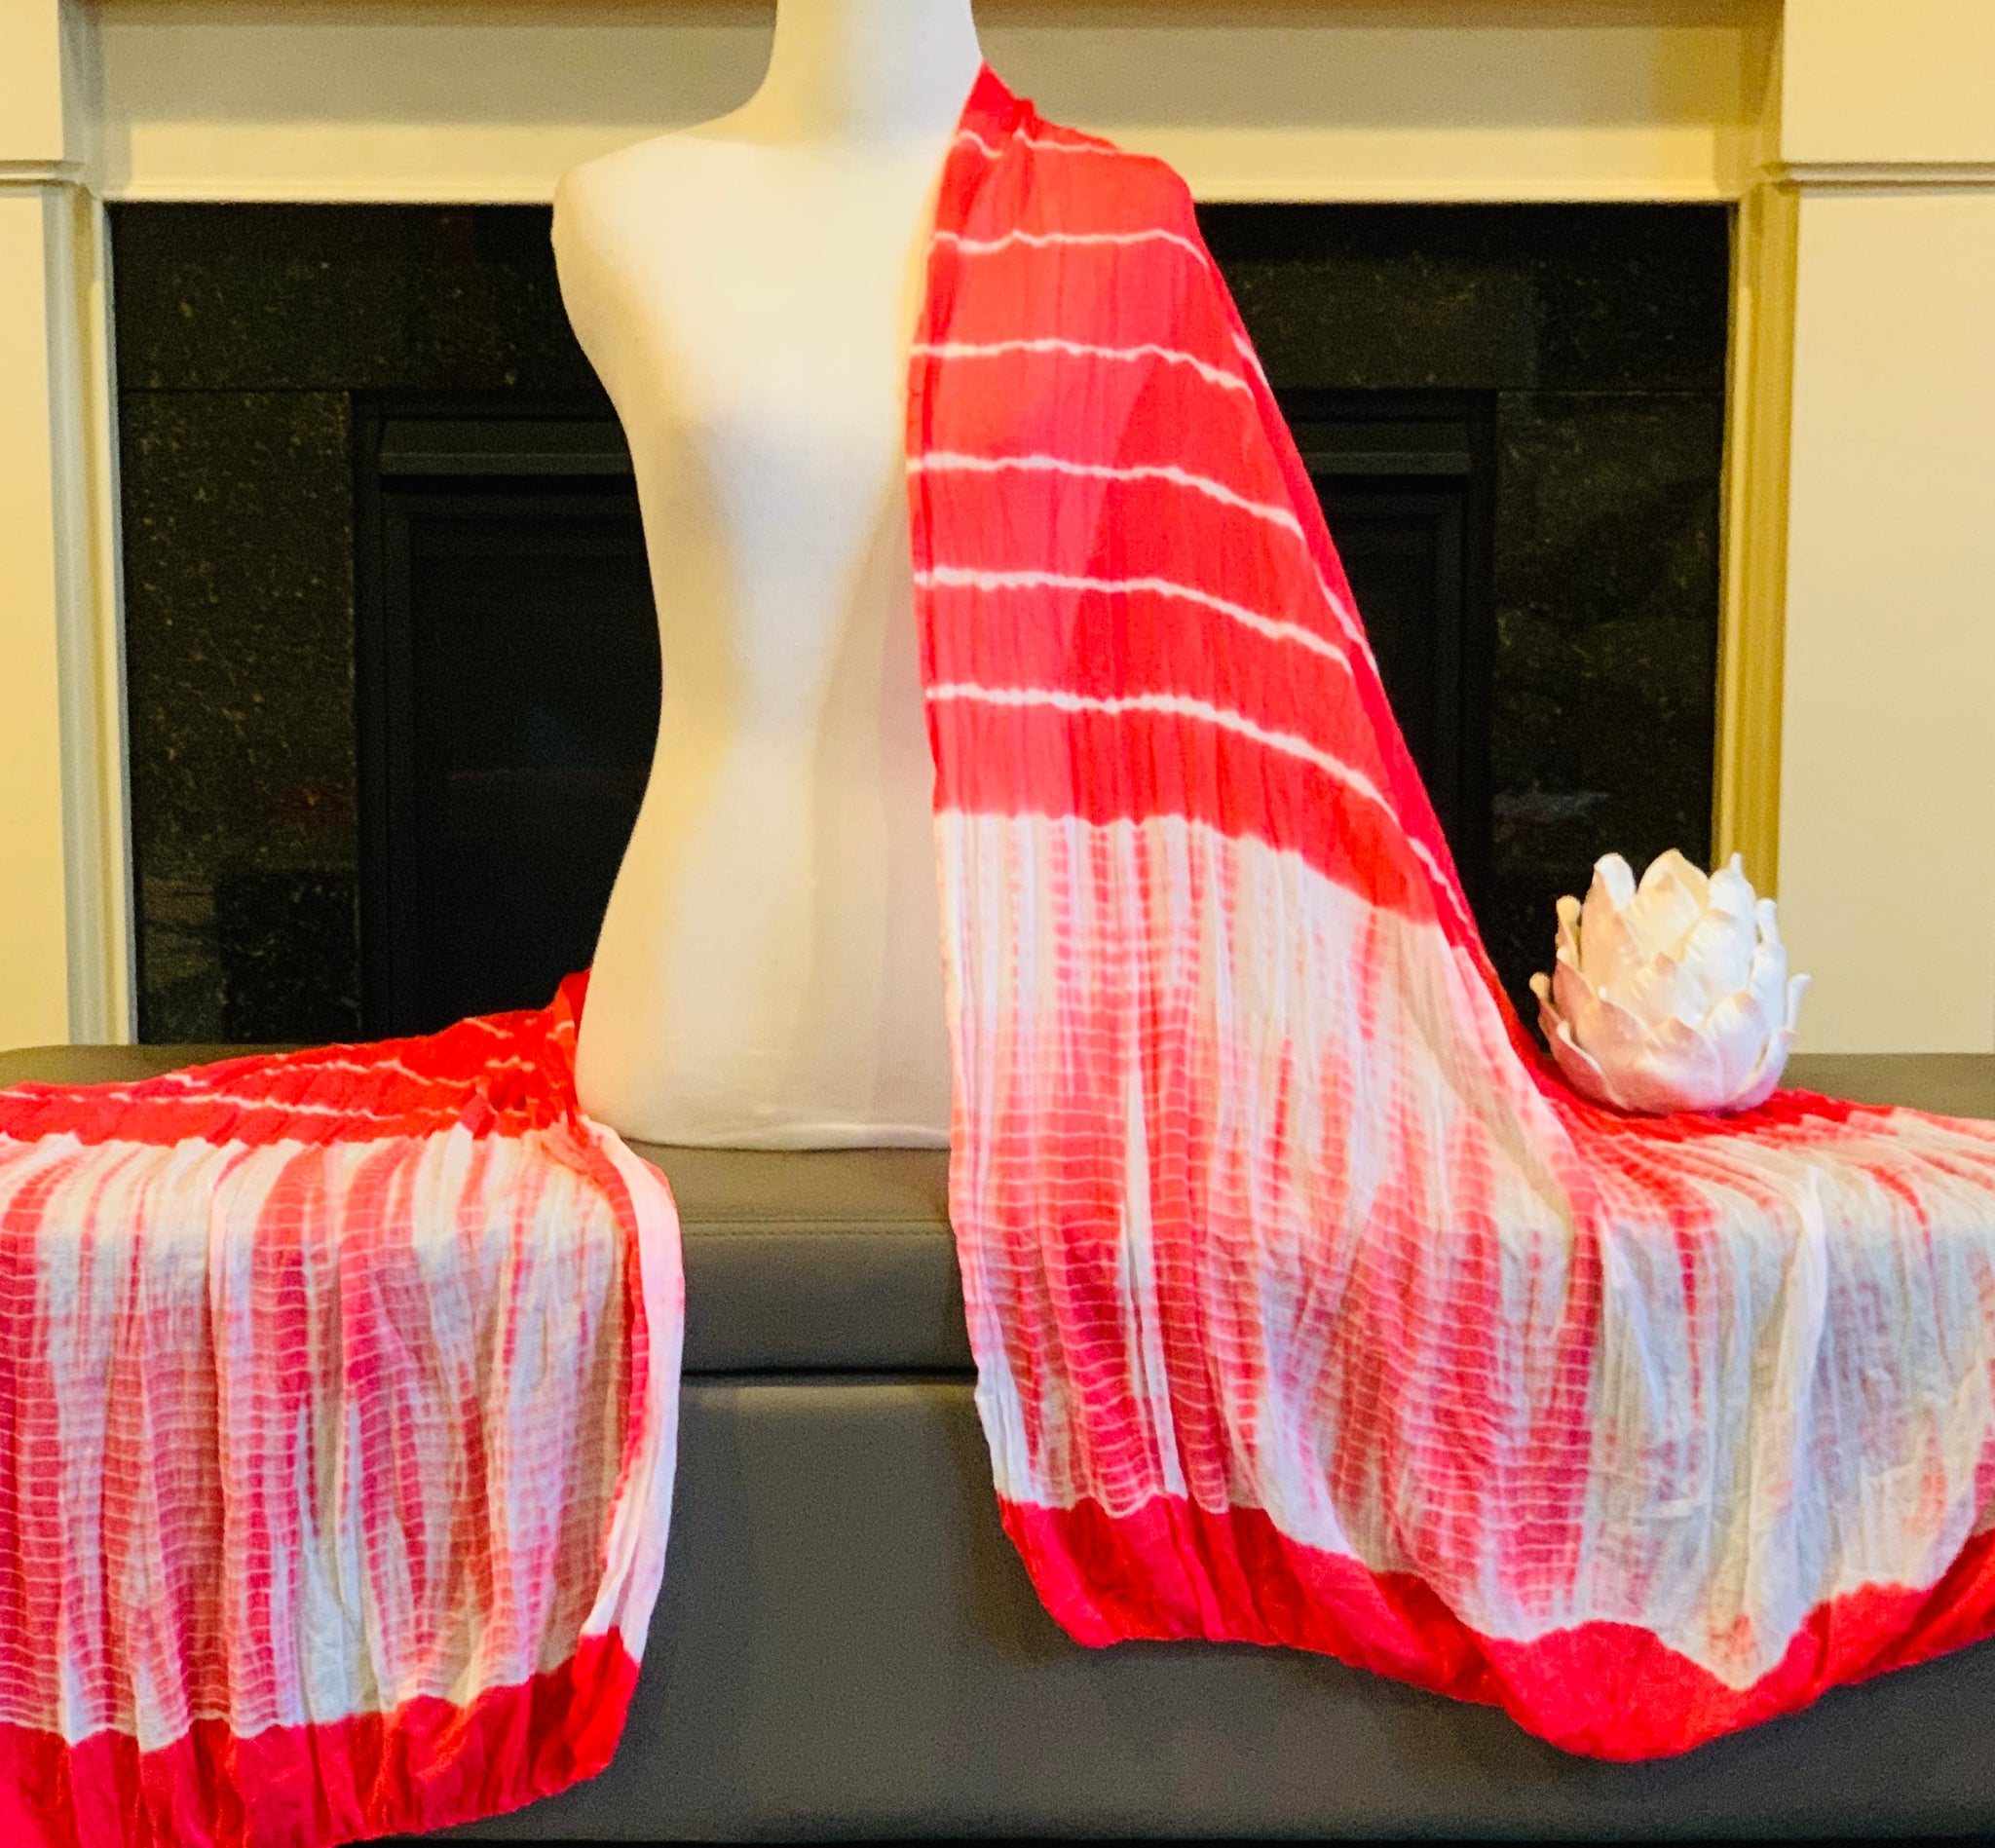 Red and White Tie and Dye Dupatta/Scarf